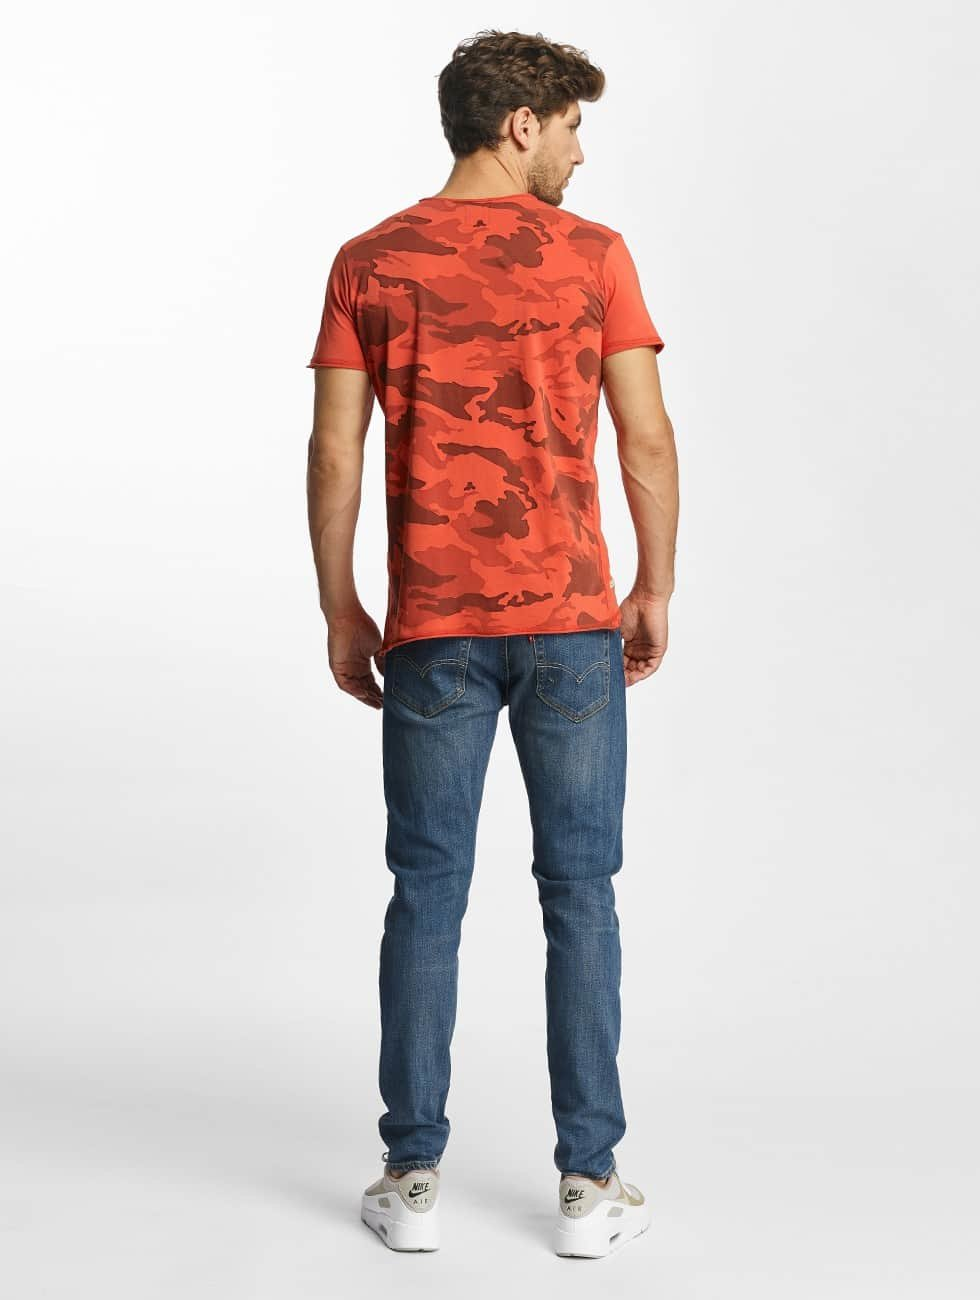 Red Bridge T-shirt Backing You Up rosso